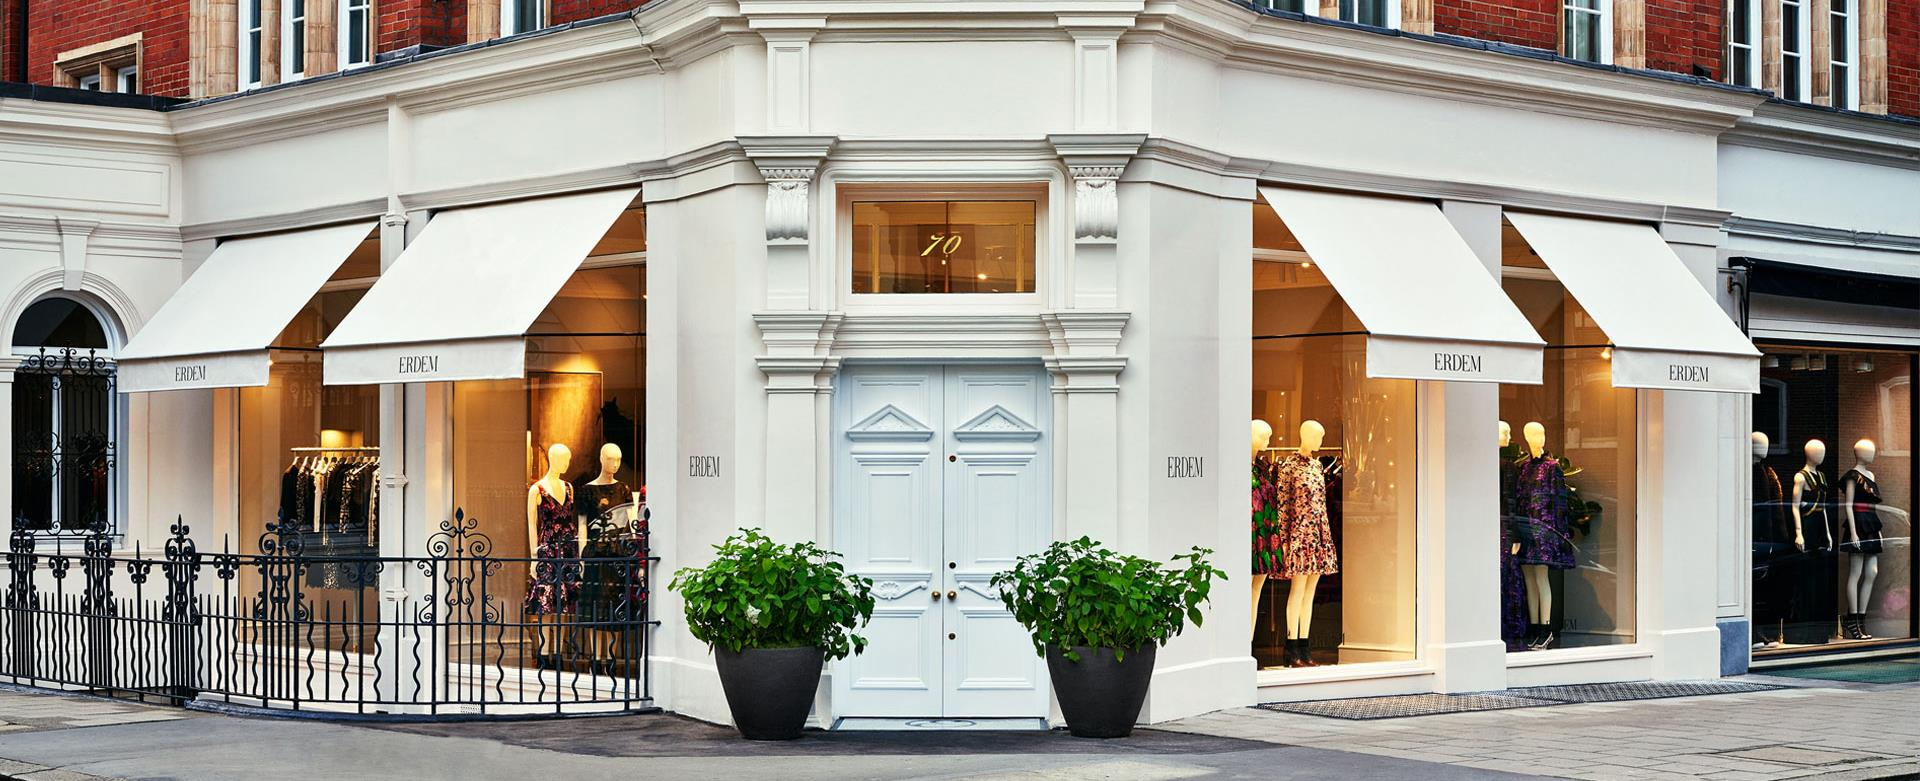 ERDEM London store at 70 south audley street